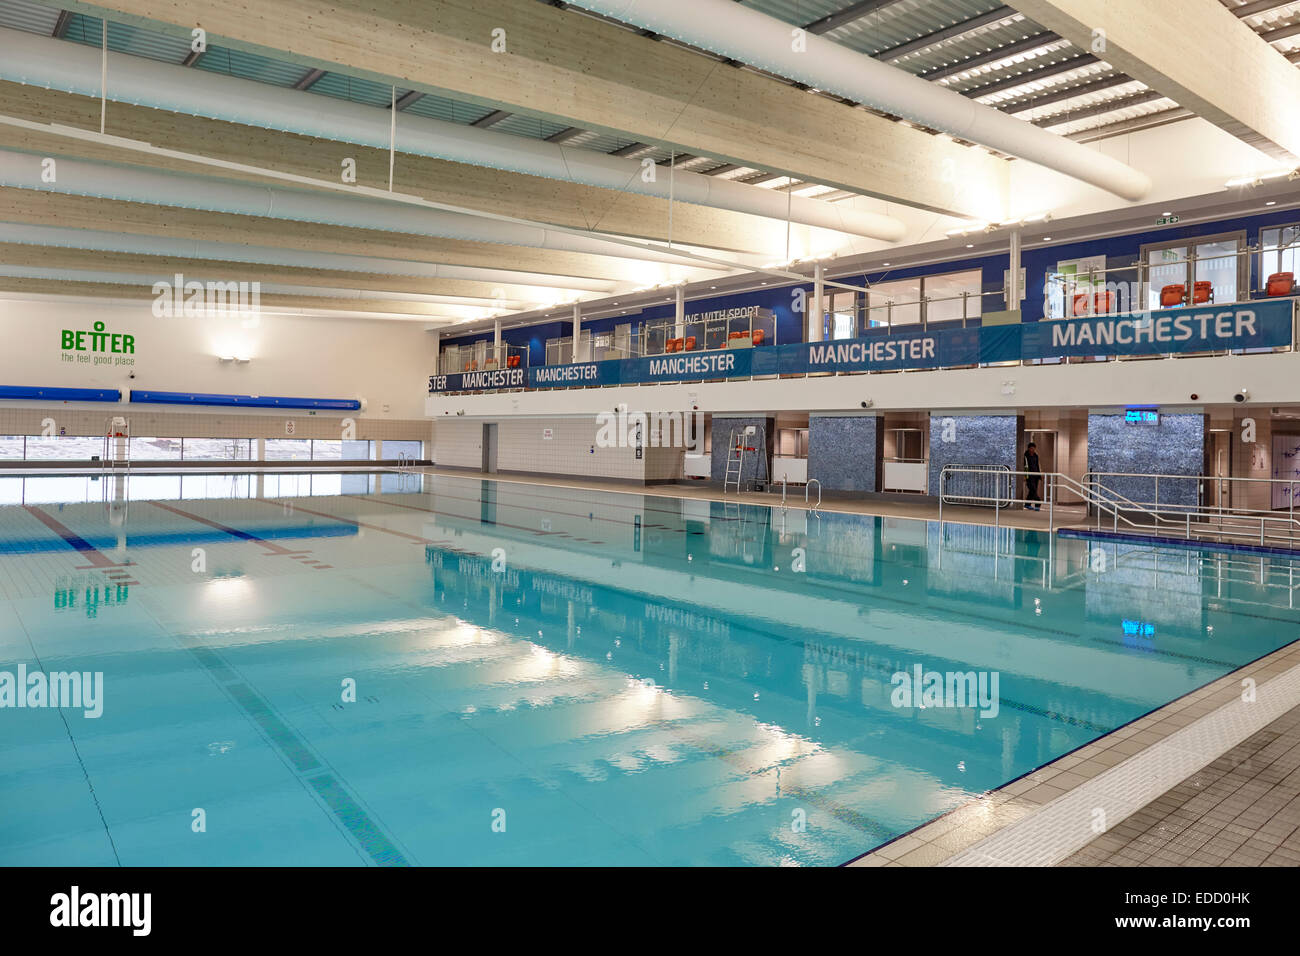 Deep end swimming pool stock photos deep end swimming pool stock images alamy for Public swimming pools manchester